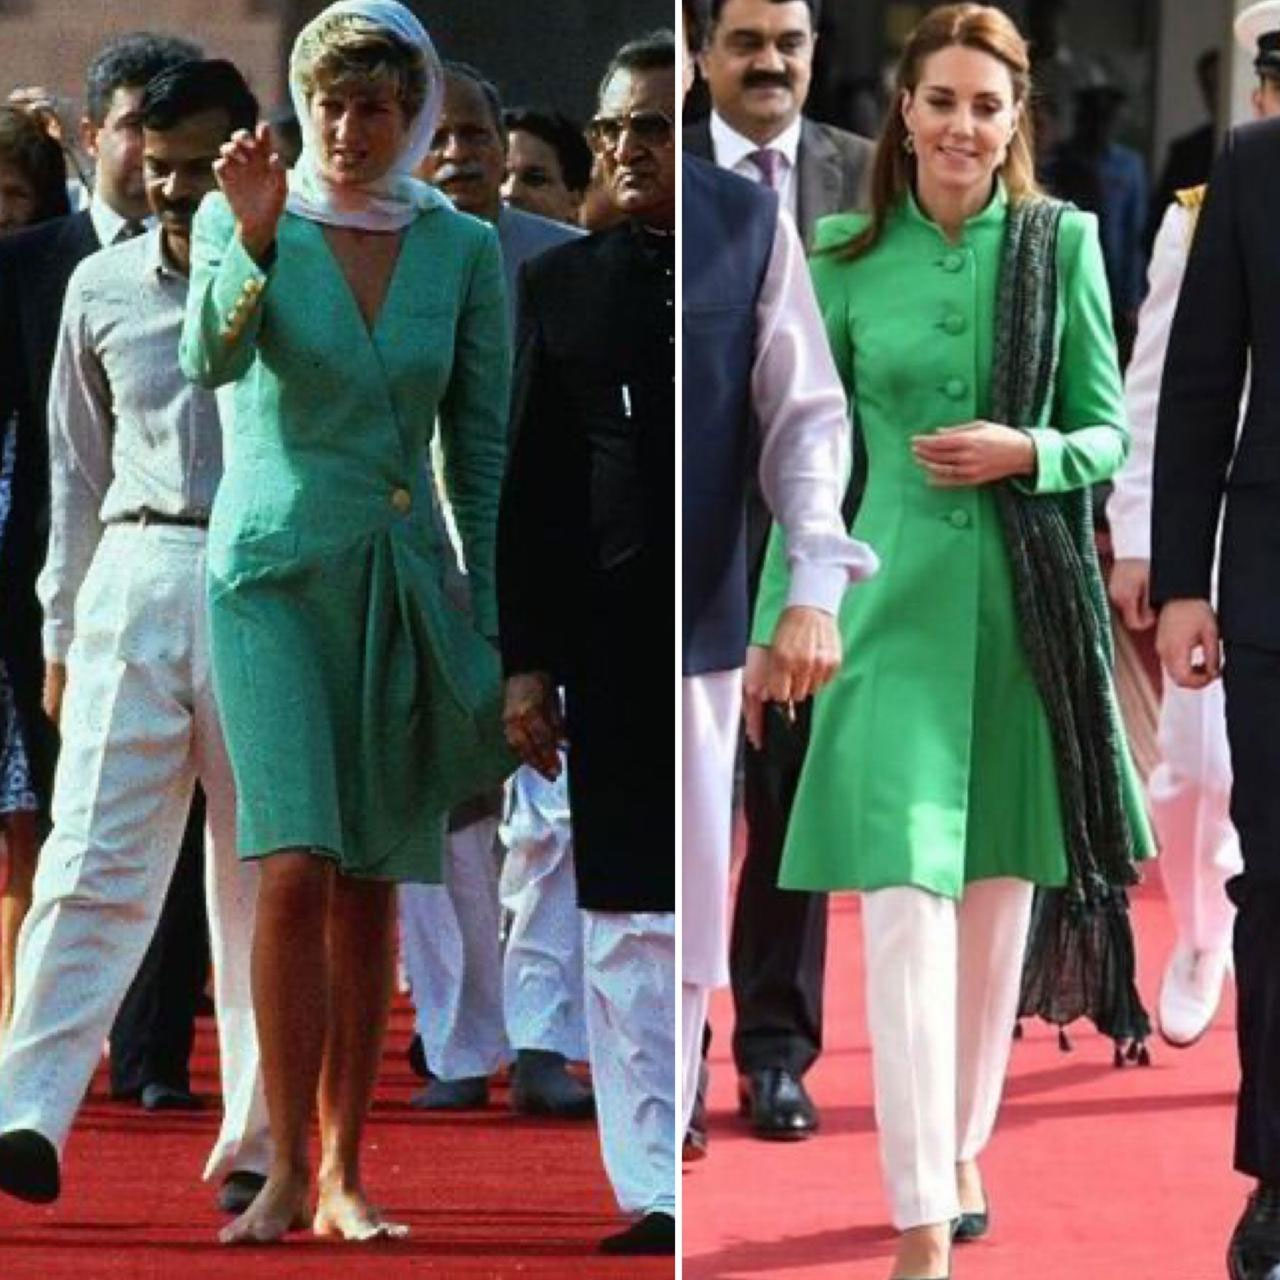 Prince William and Kate Middleton in Pakistan: Duchess of Cambridge Channels Princess Diana